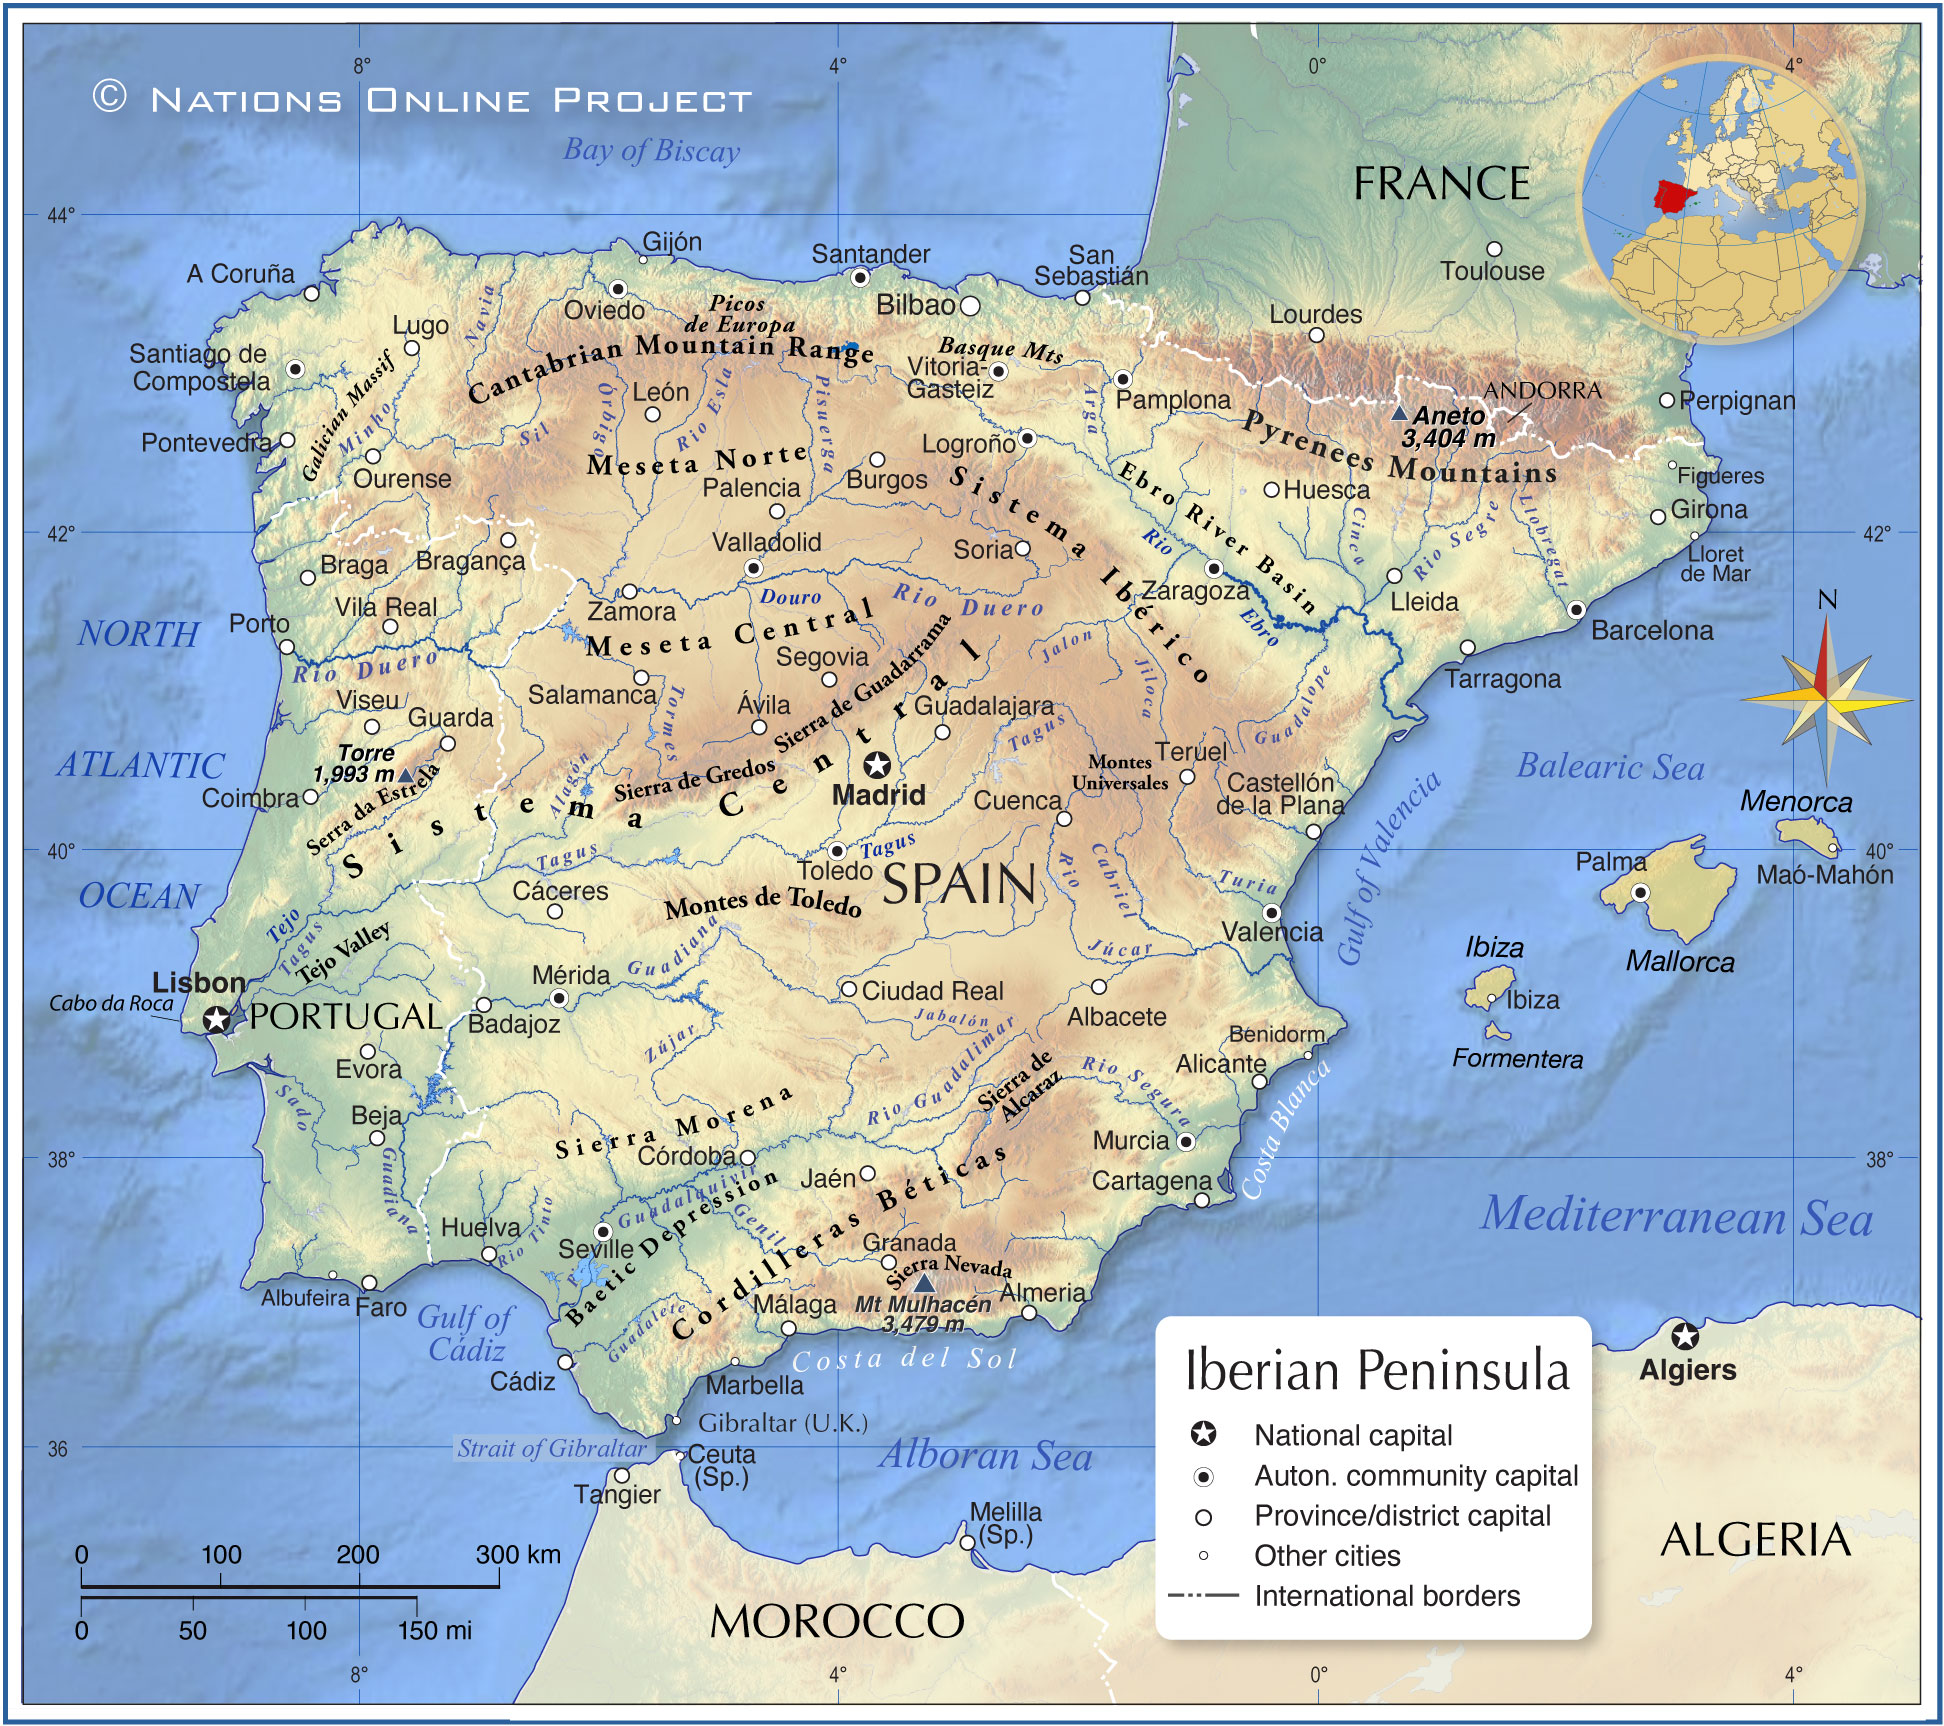 Topographic Map of Spain - Nations Online Project on map of austria in spanish, map of dominican republic in spanish, map of spanish speaking world, map of equatorial guinea in spanish, map of china in spanish, map of continents in spanish, map of cities in espana, map of countries that speak spanish, espana capital in spanish, map of united states in spanish, map of puerto rico in spanish, map of egypt in spanish, map of north america in spanish, map of trinidad in spanish, map of barcelona in spanish, map of paraguay in spanish, map of spanish speaking countries, capital of venezuela in spanish, map of england in 1500, map of the world in spanish,